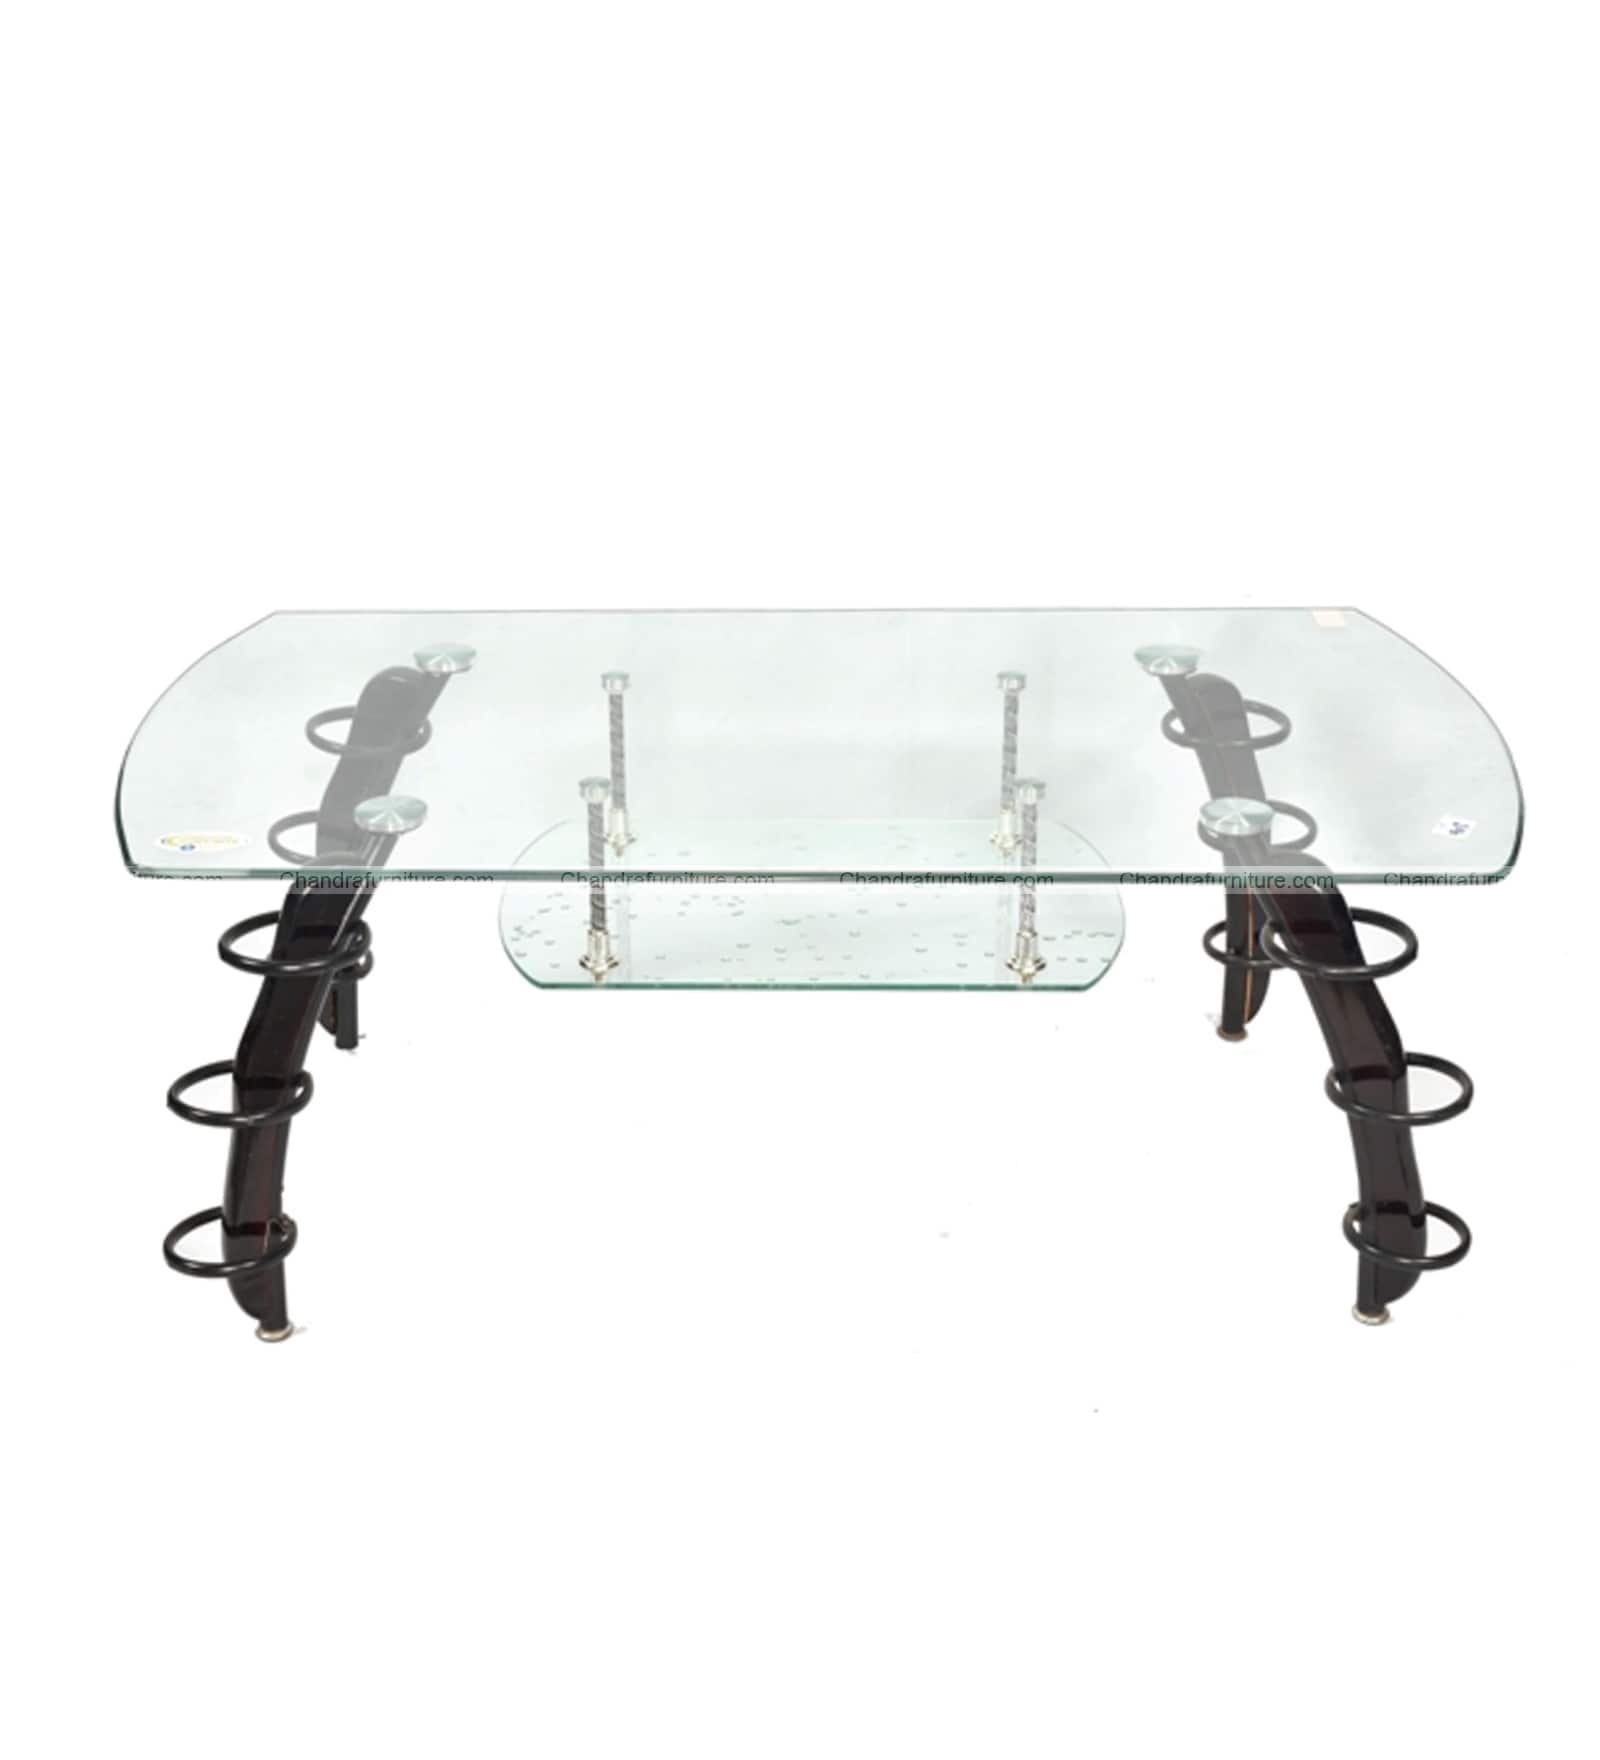 CHANDRA FURNITURE CENTER TABLE  903 D SERIES